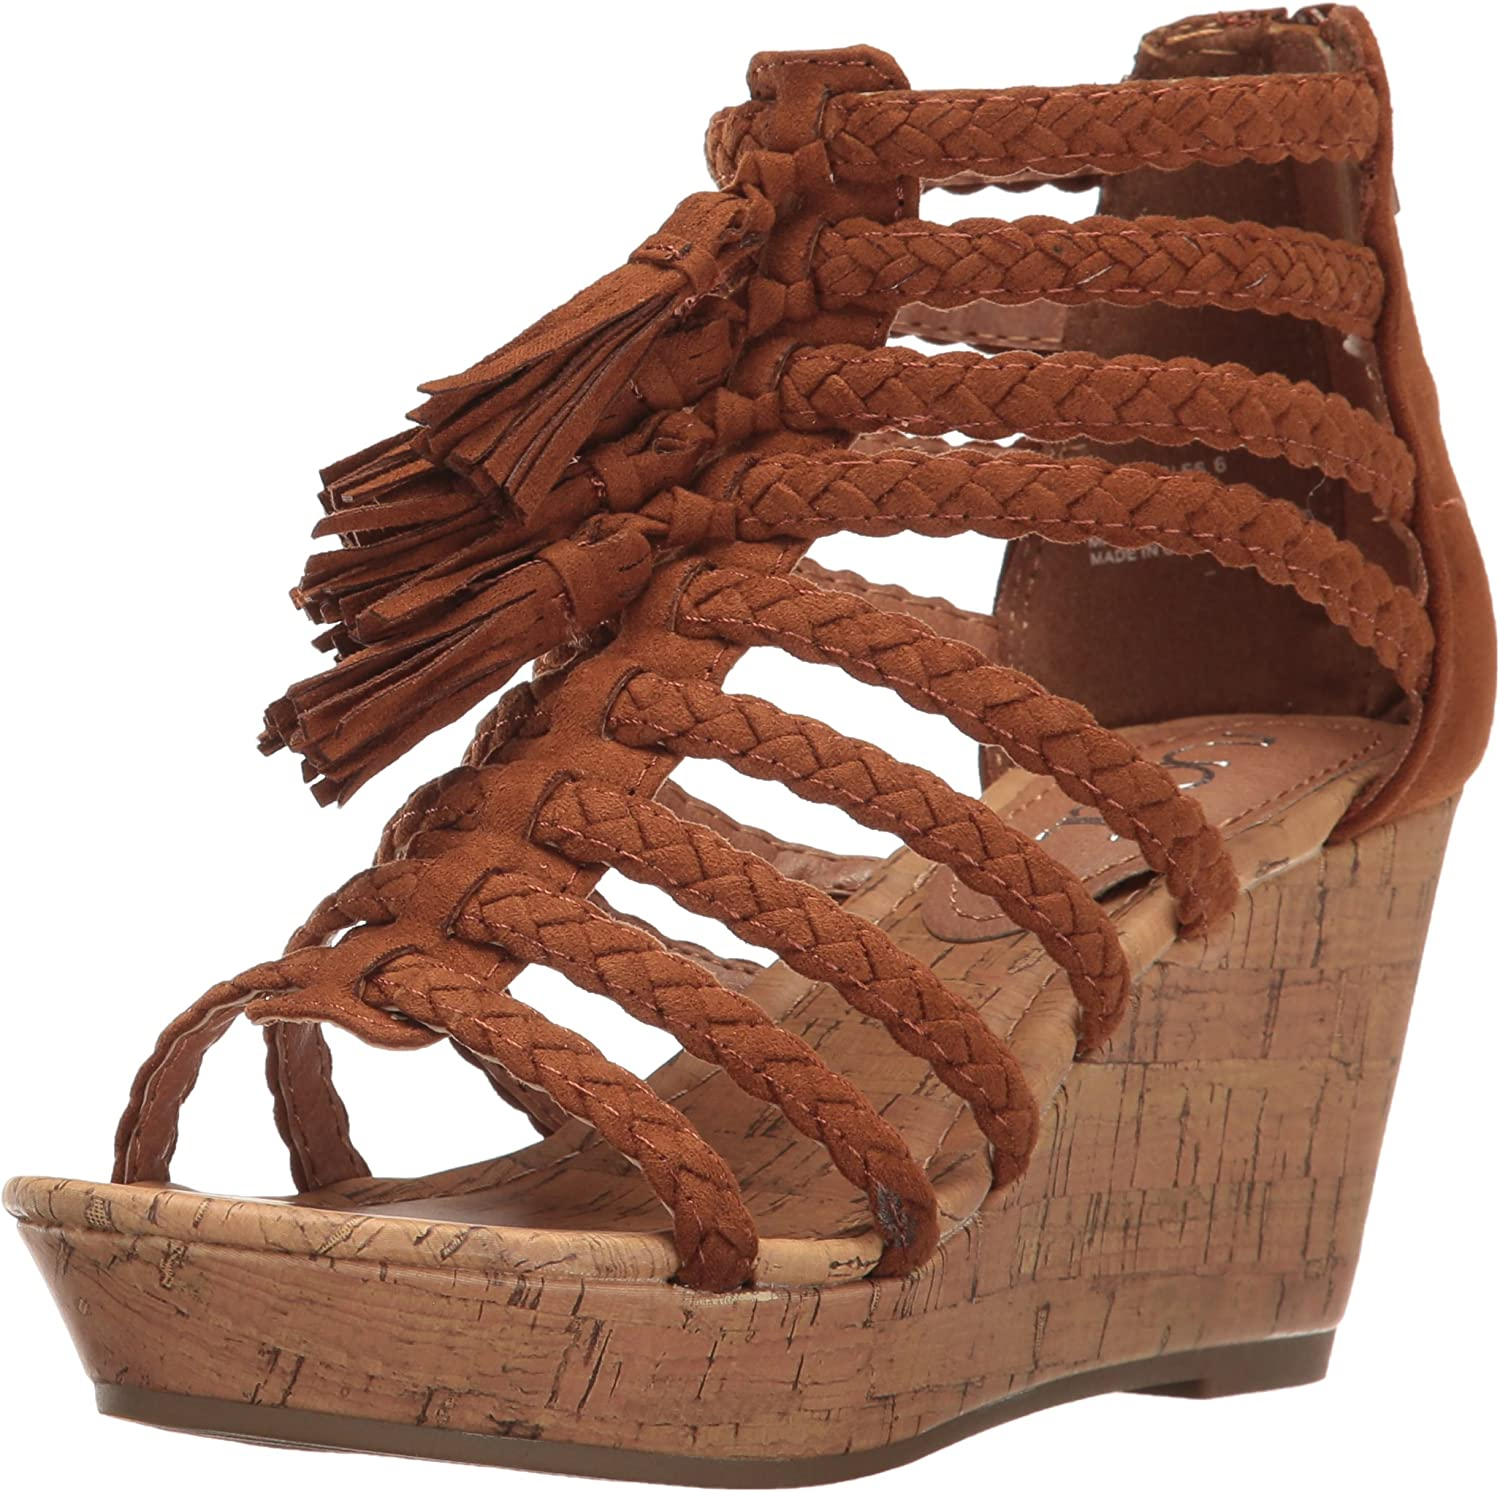 Sugar Womens Jungles Wedge Sandal